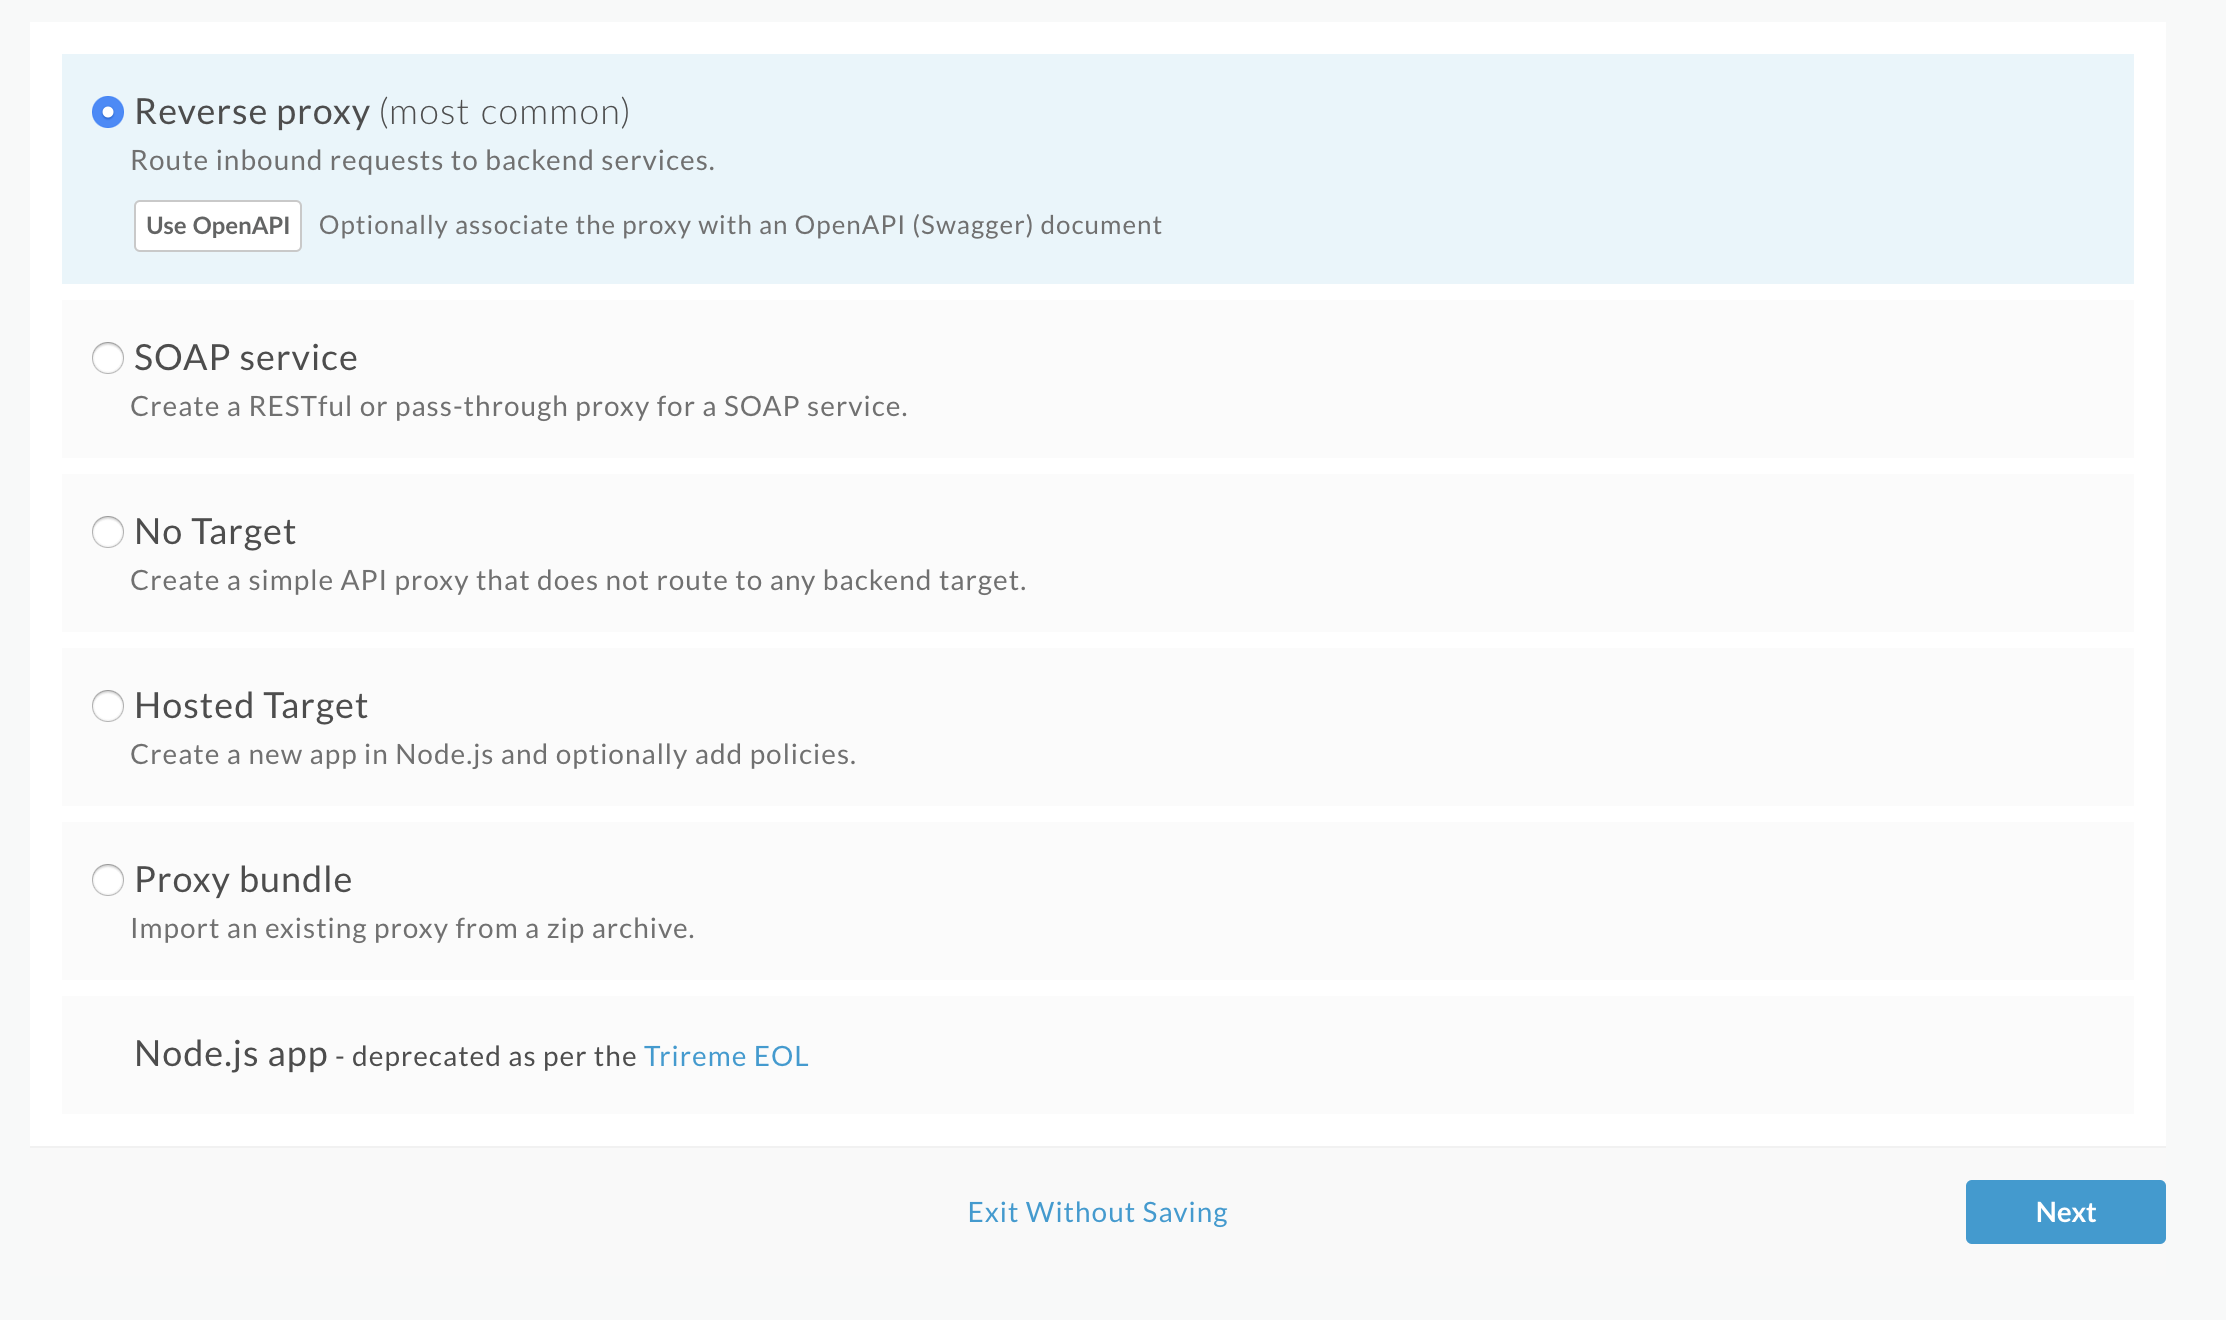 First page of the Create Proxy wizard prompting you to select reverse proxy, SOAP service, No Target, or Proxy bundle to customize the wizard flow.